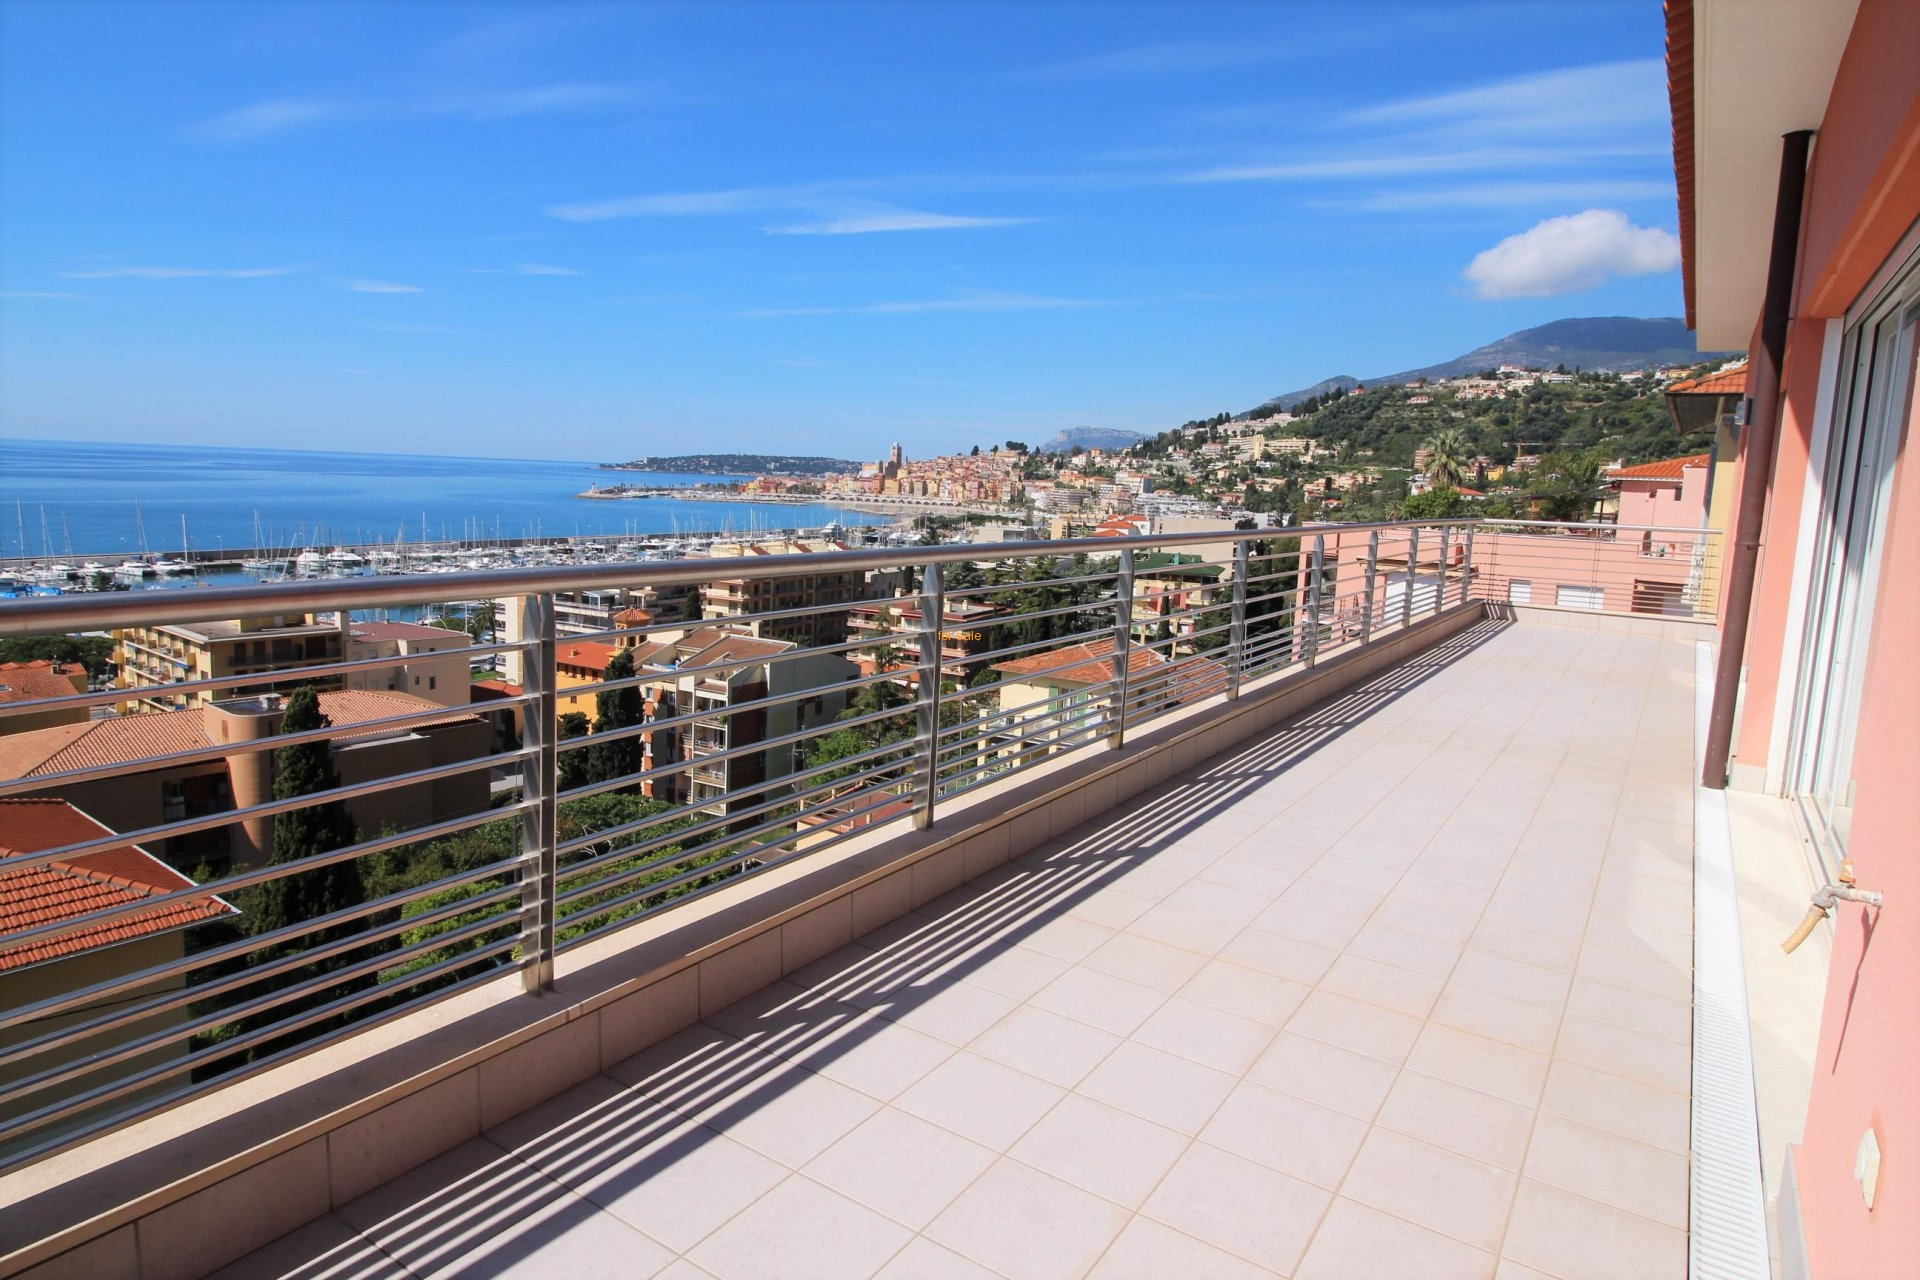 WMN2861743, Penthouse apartment with large terrace and magnificent sea view - Menton Garavan